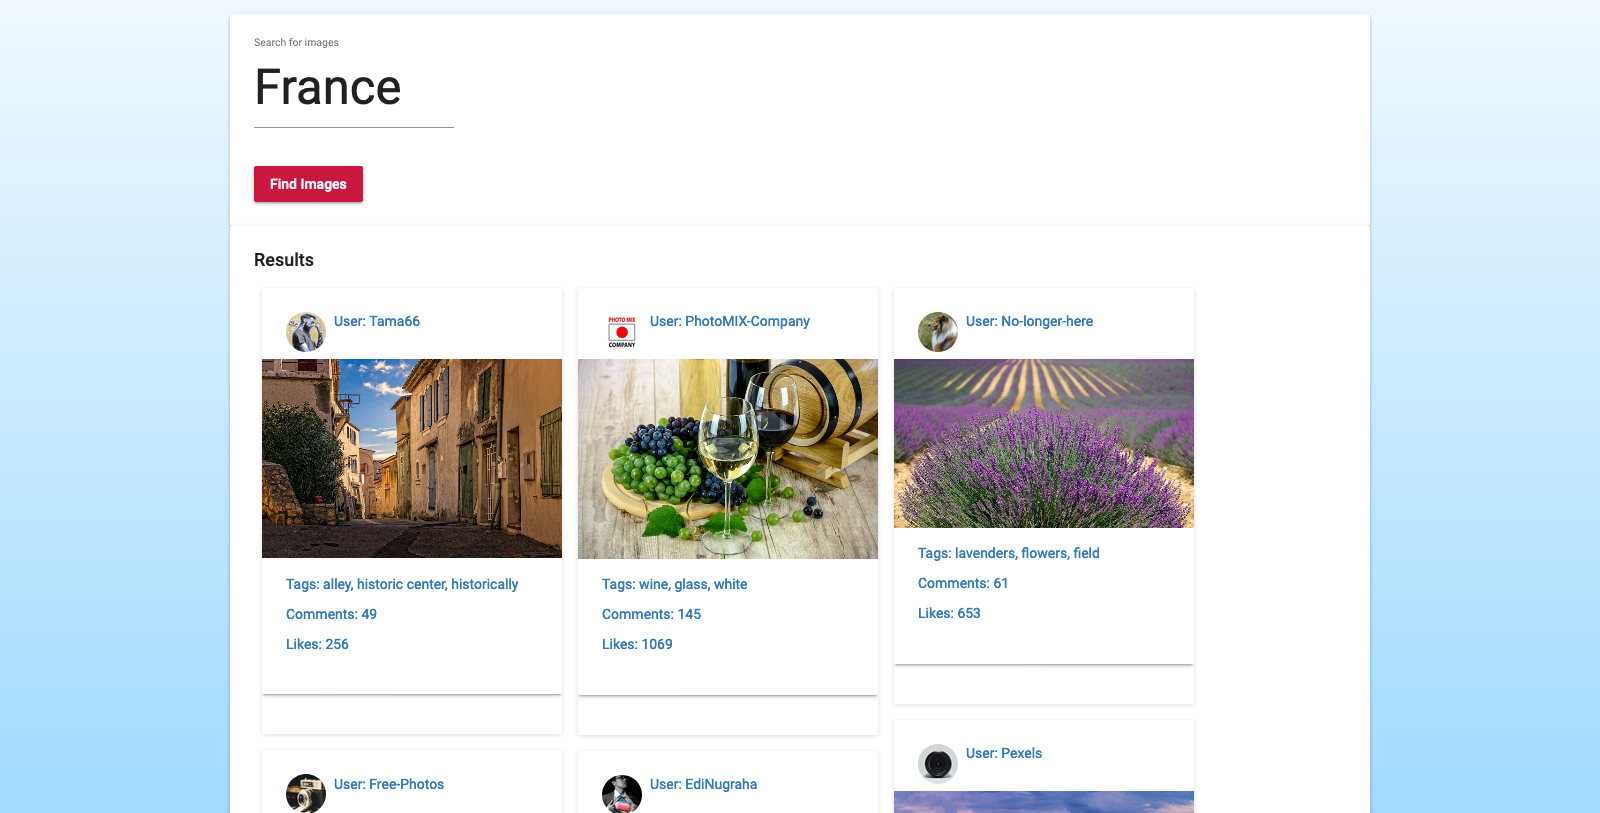 Landing page of Image Search App